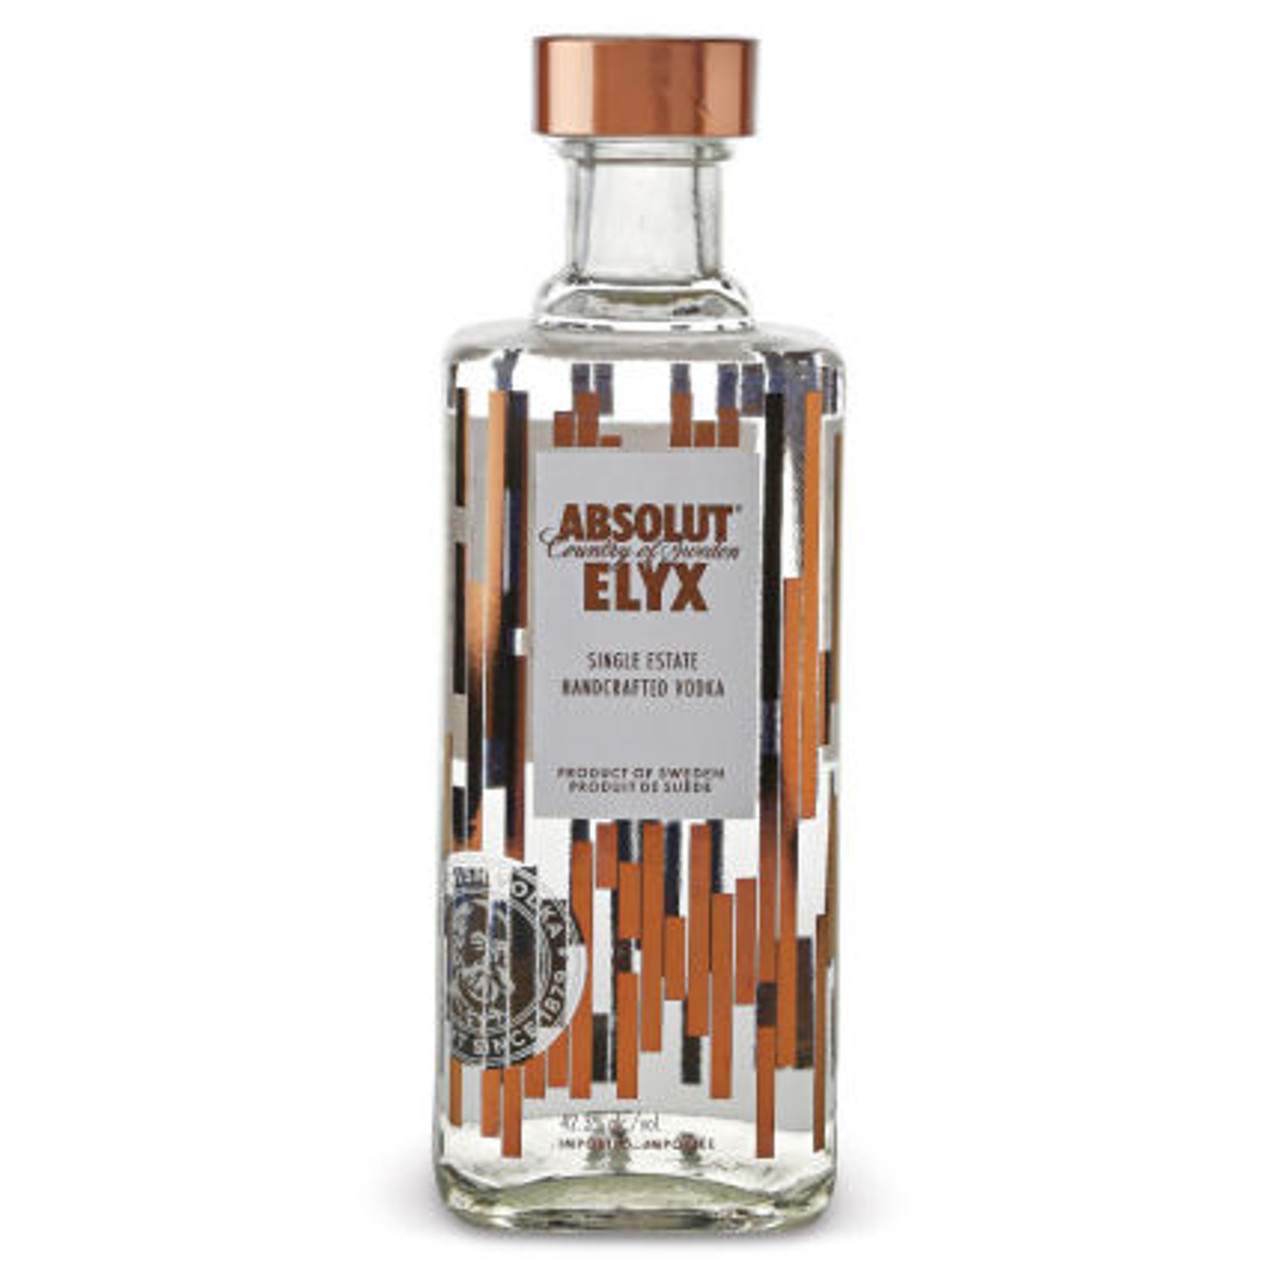 Absolut Elyx Single Estate Vodka 750ml